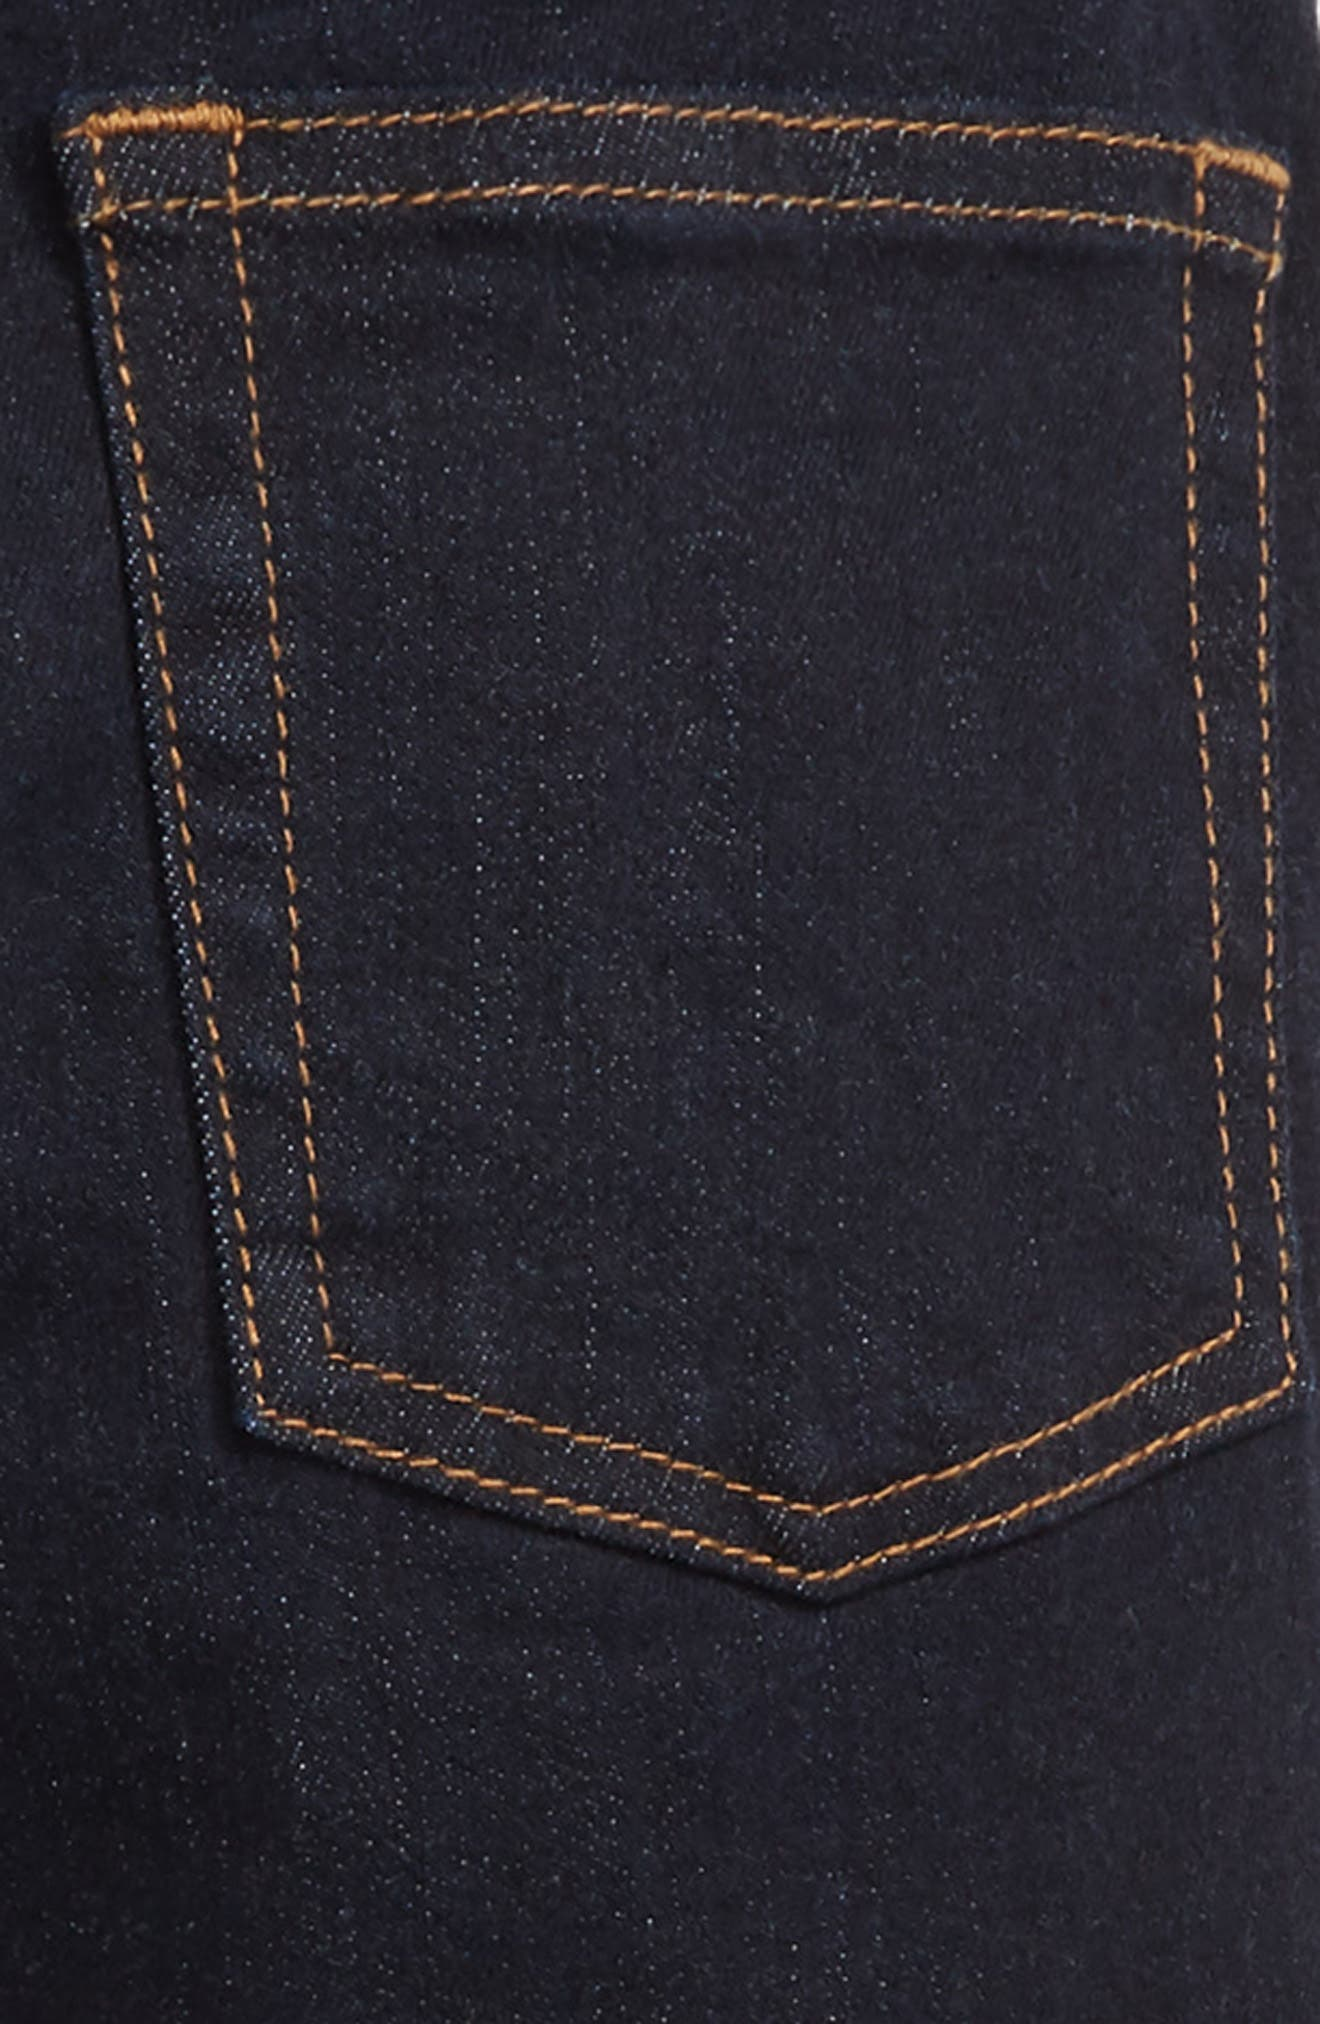 Runaround Skinny Jeans,                             Alternate thumbnail 3, color,                             400